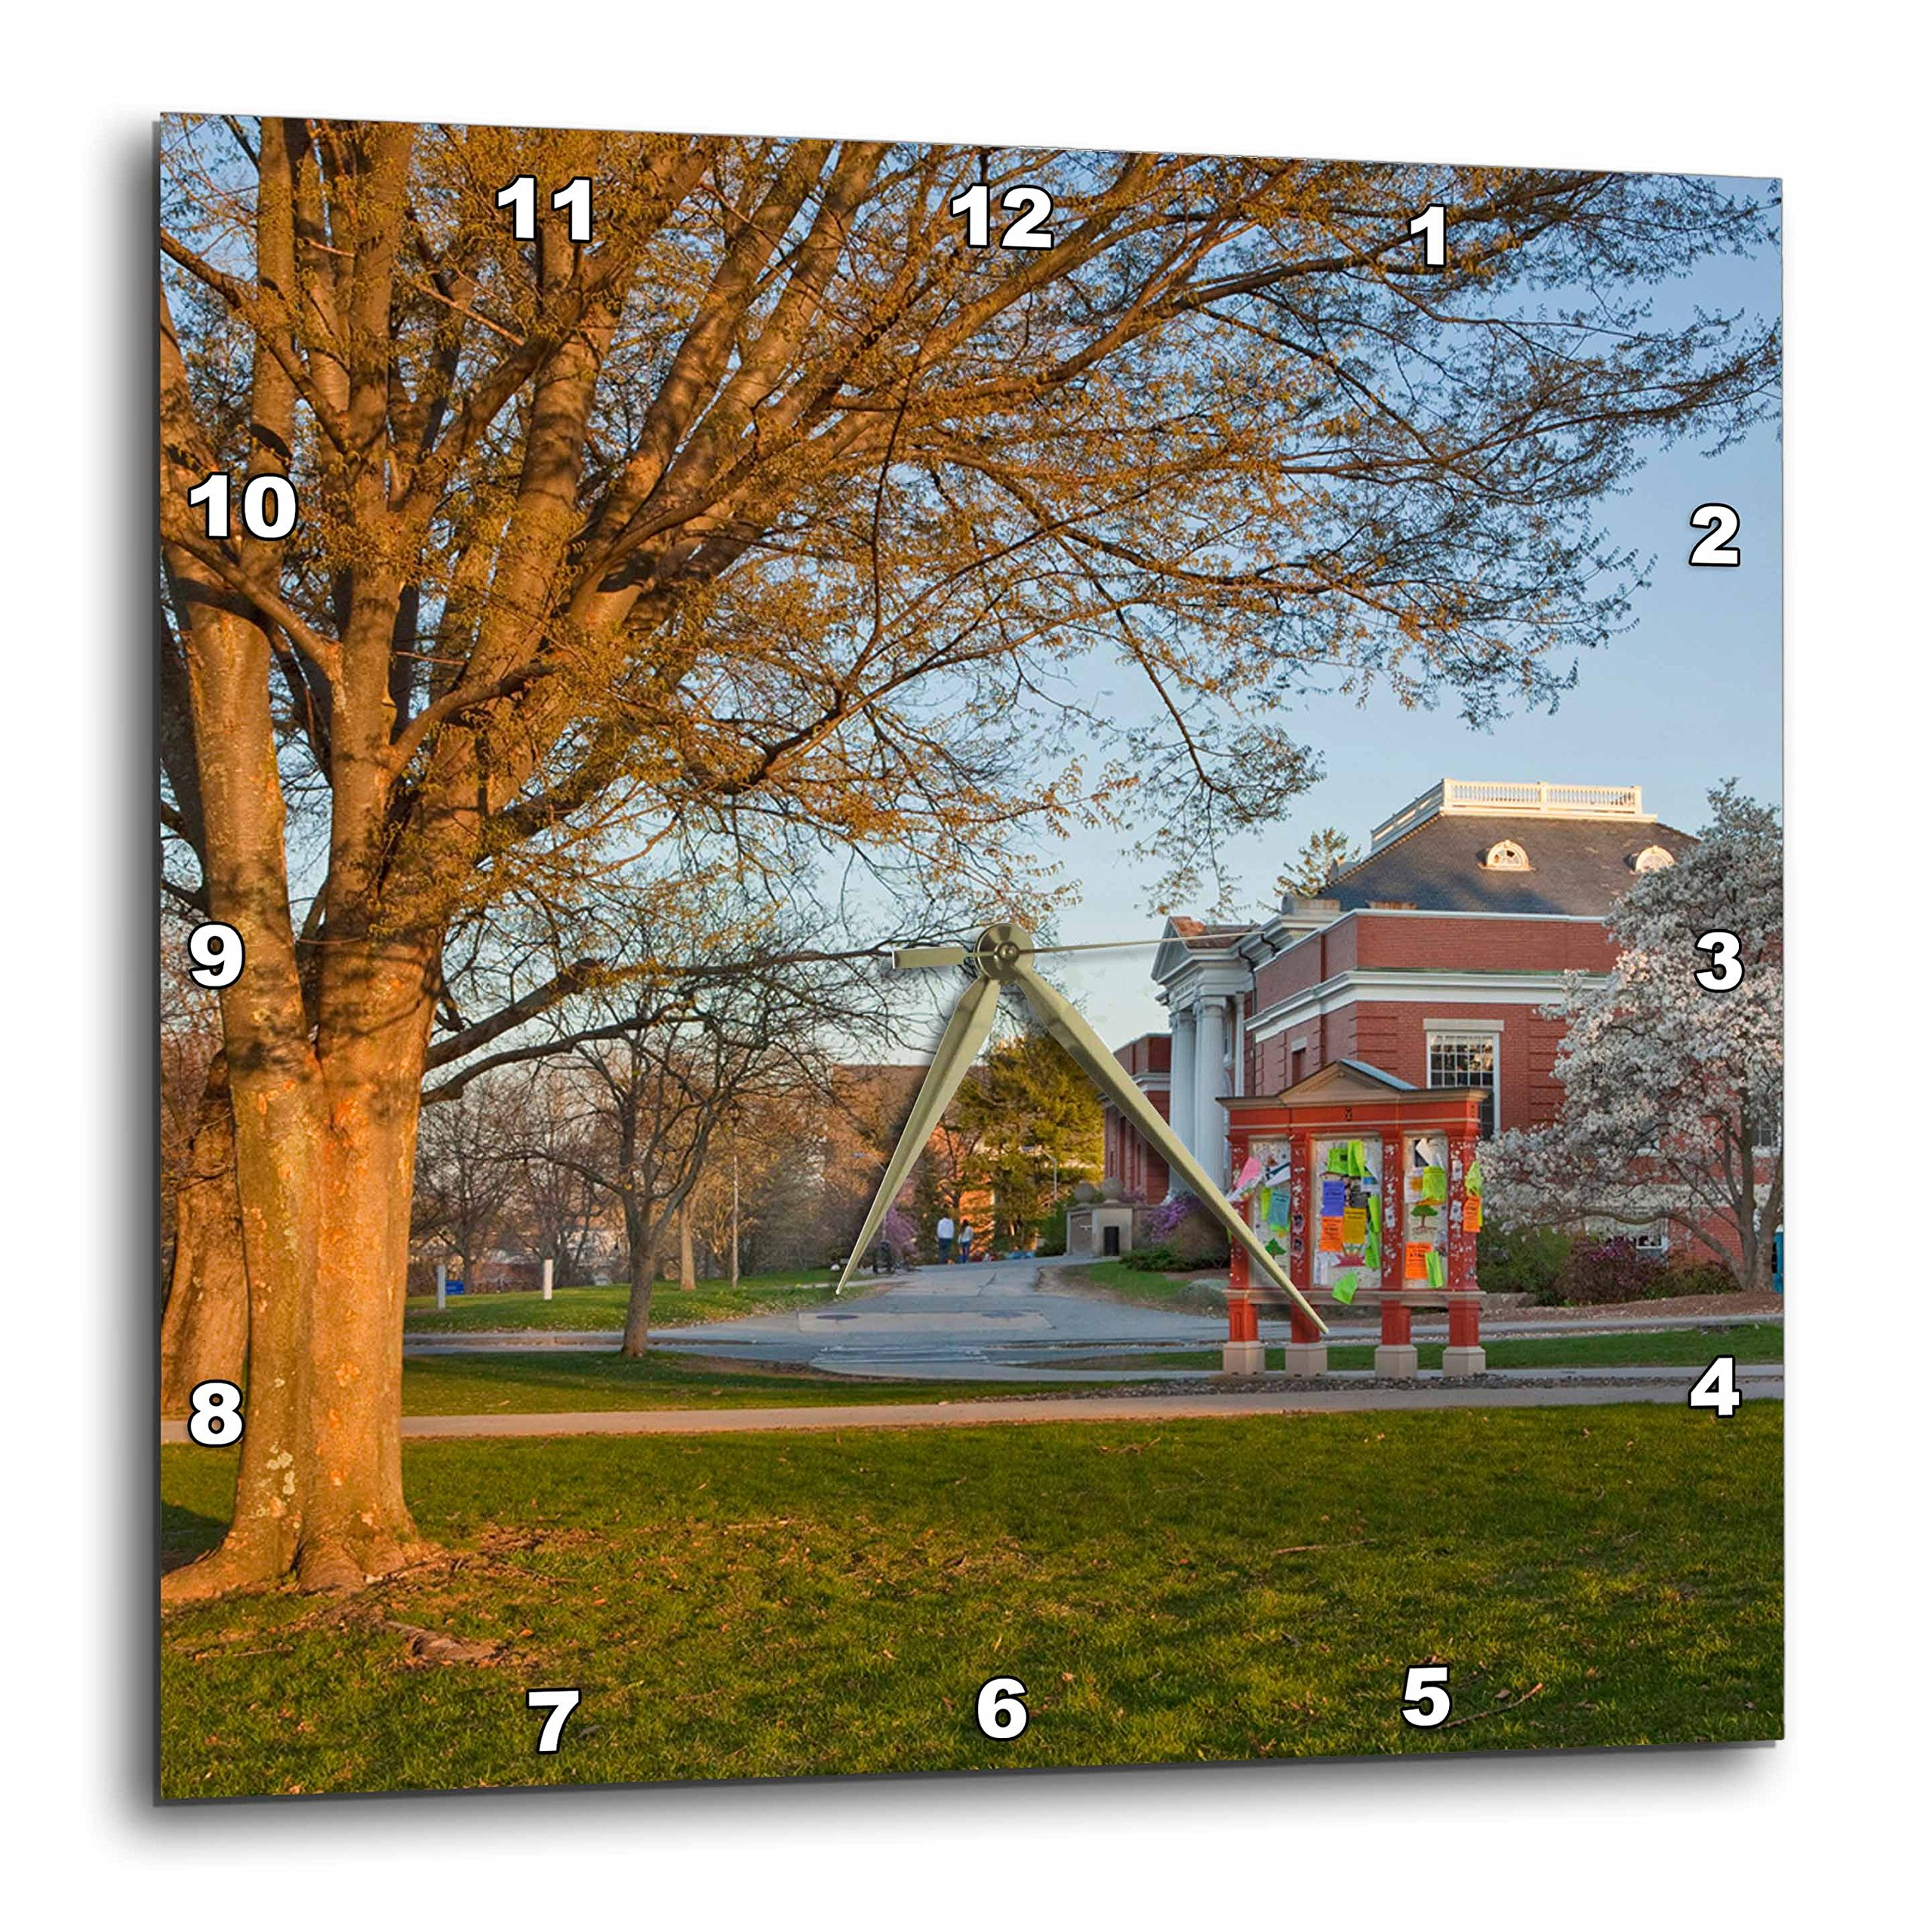 3dRose dpp_92433_1 Education, University of New Hampshire-Us30 Jmo1621-Jerry and Marcy Monkman-Wall Clock, 10 by 10-Inch